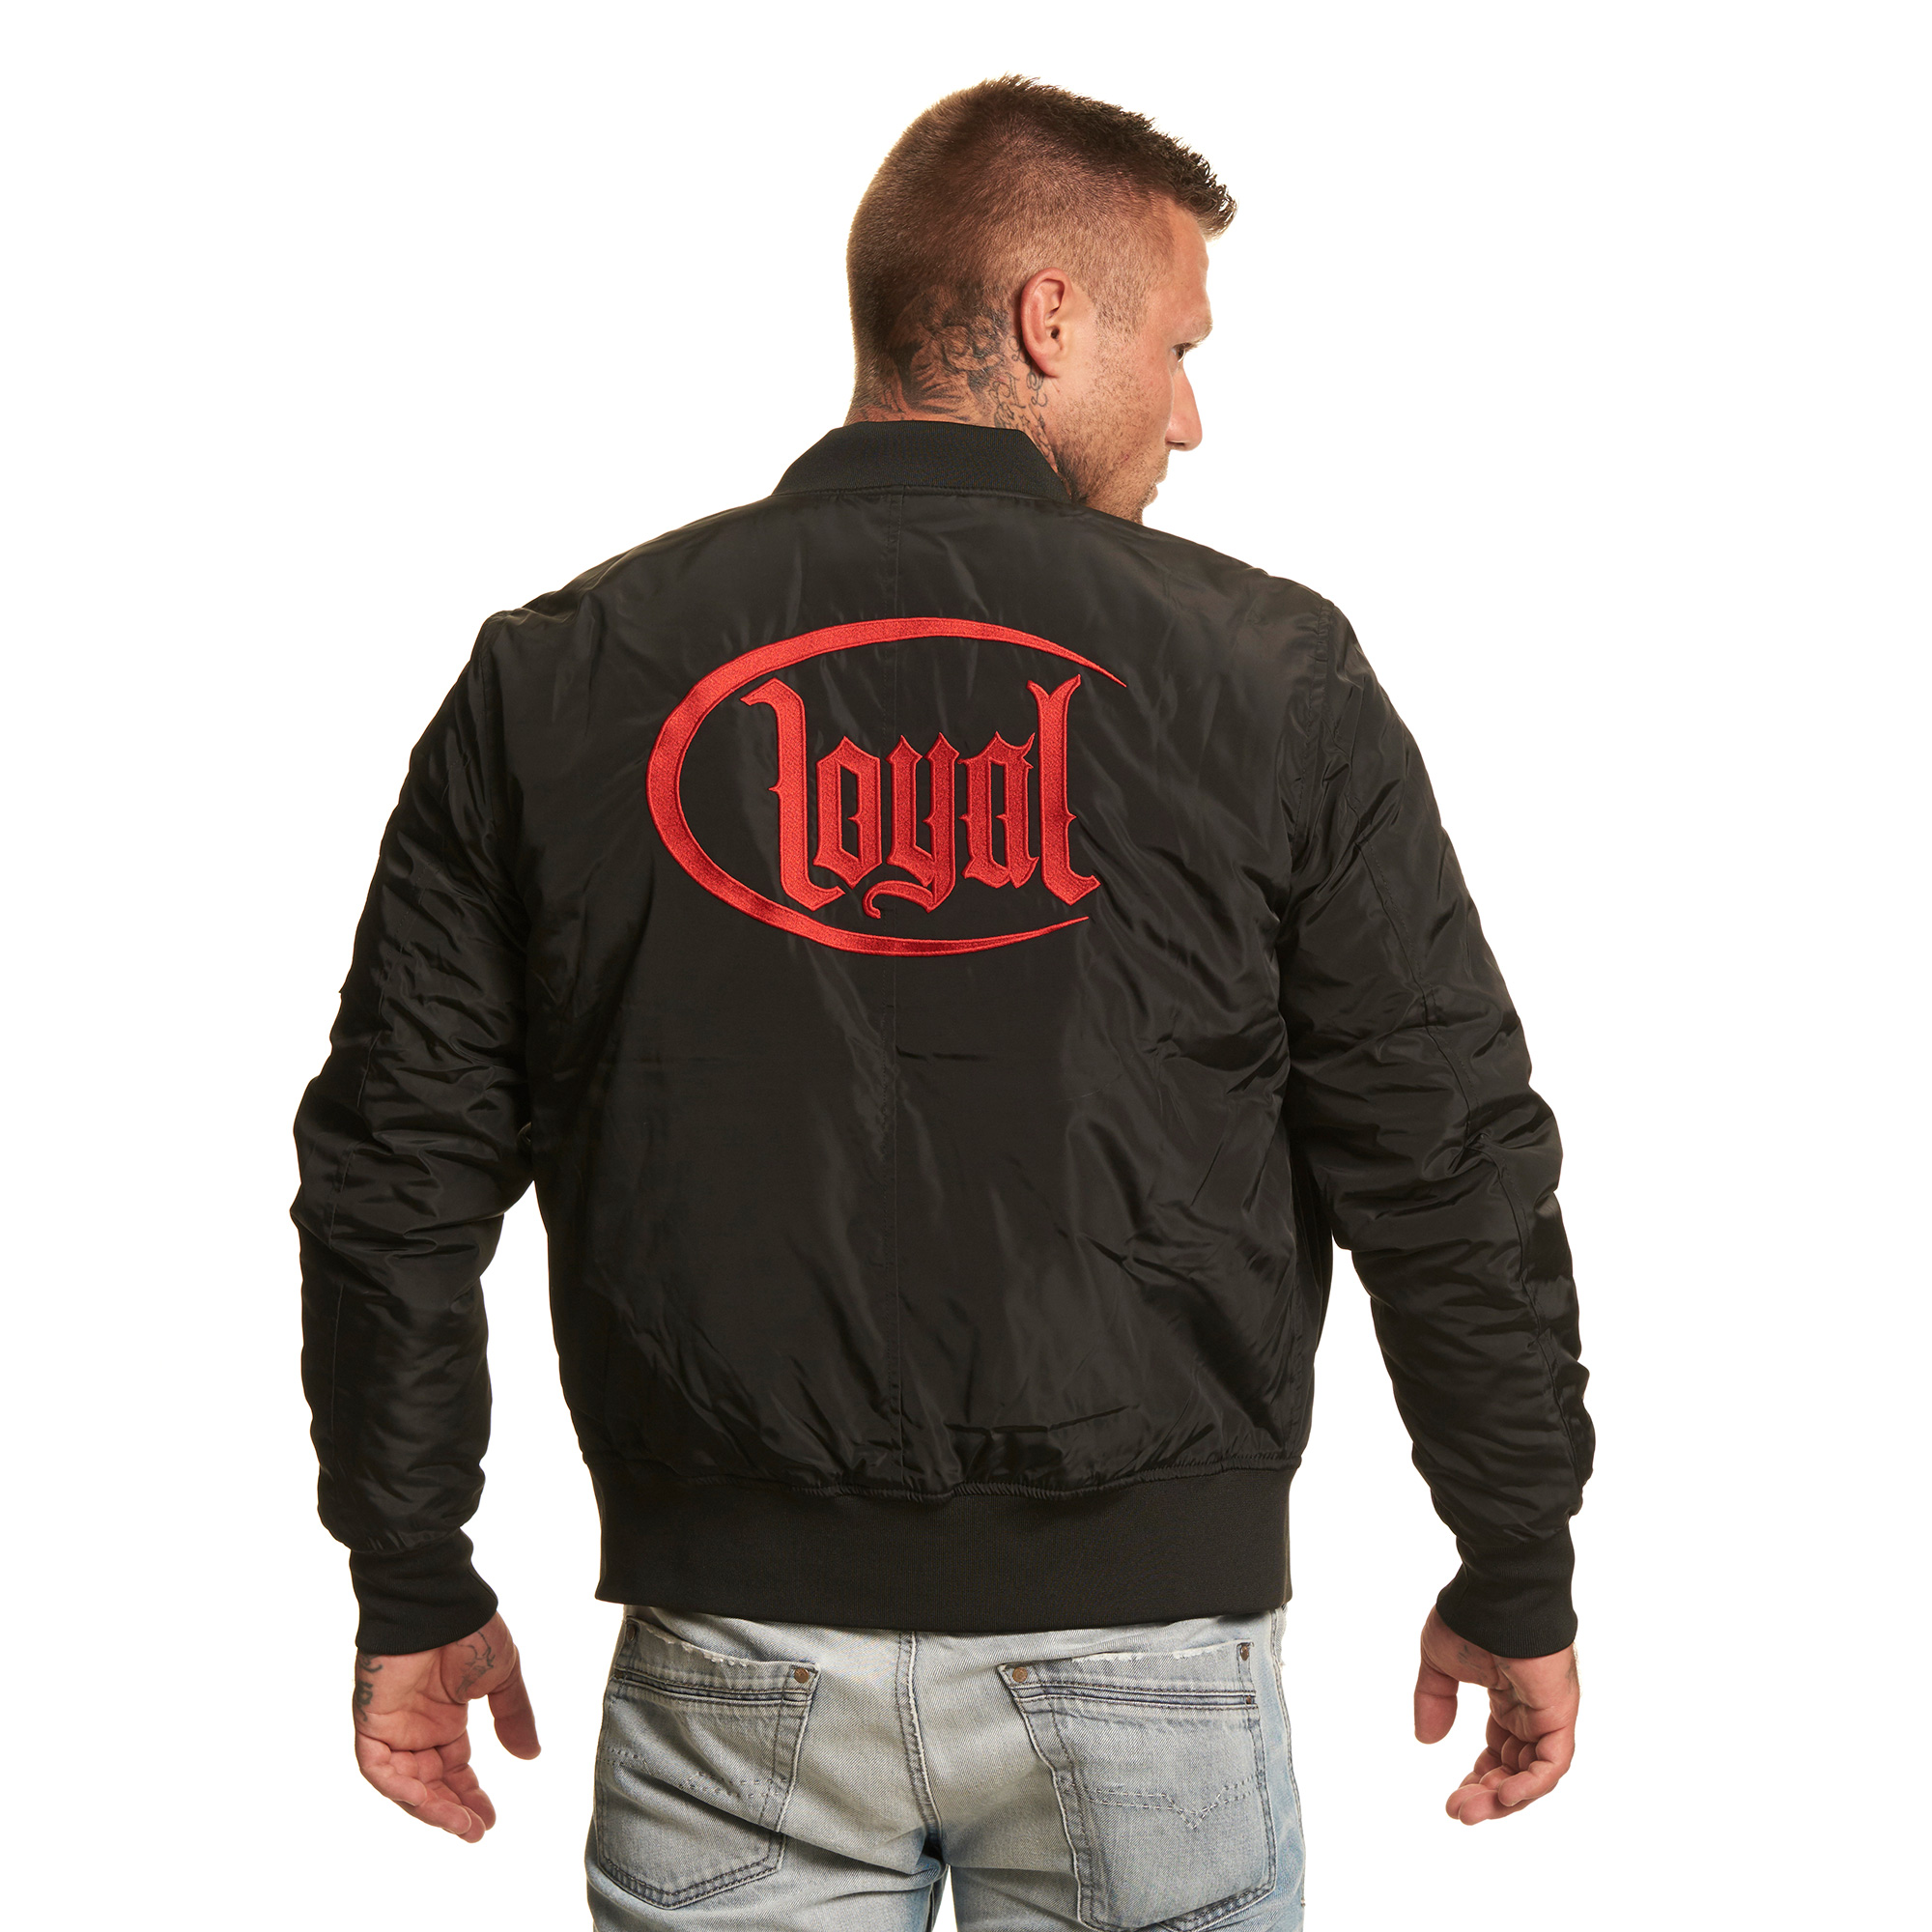 loyal merch